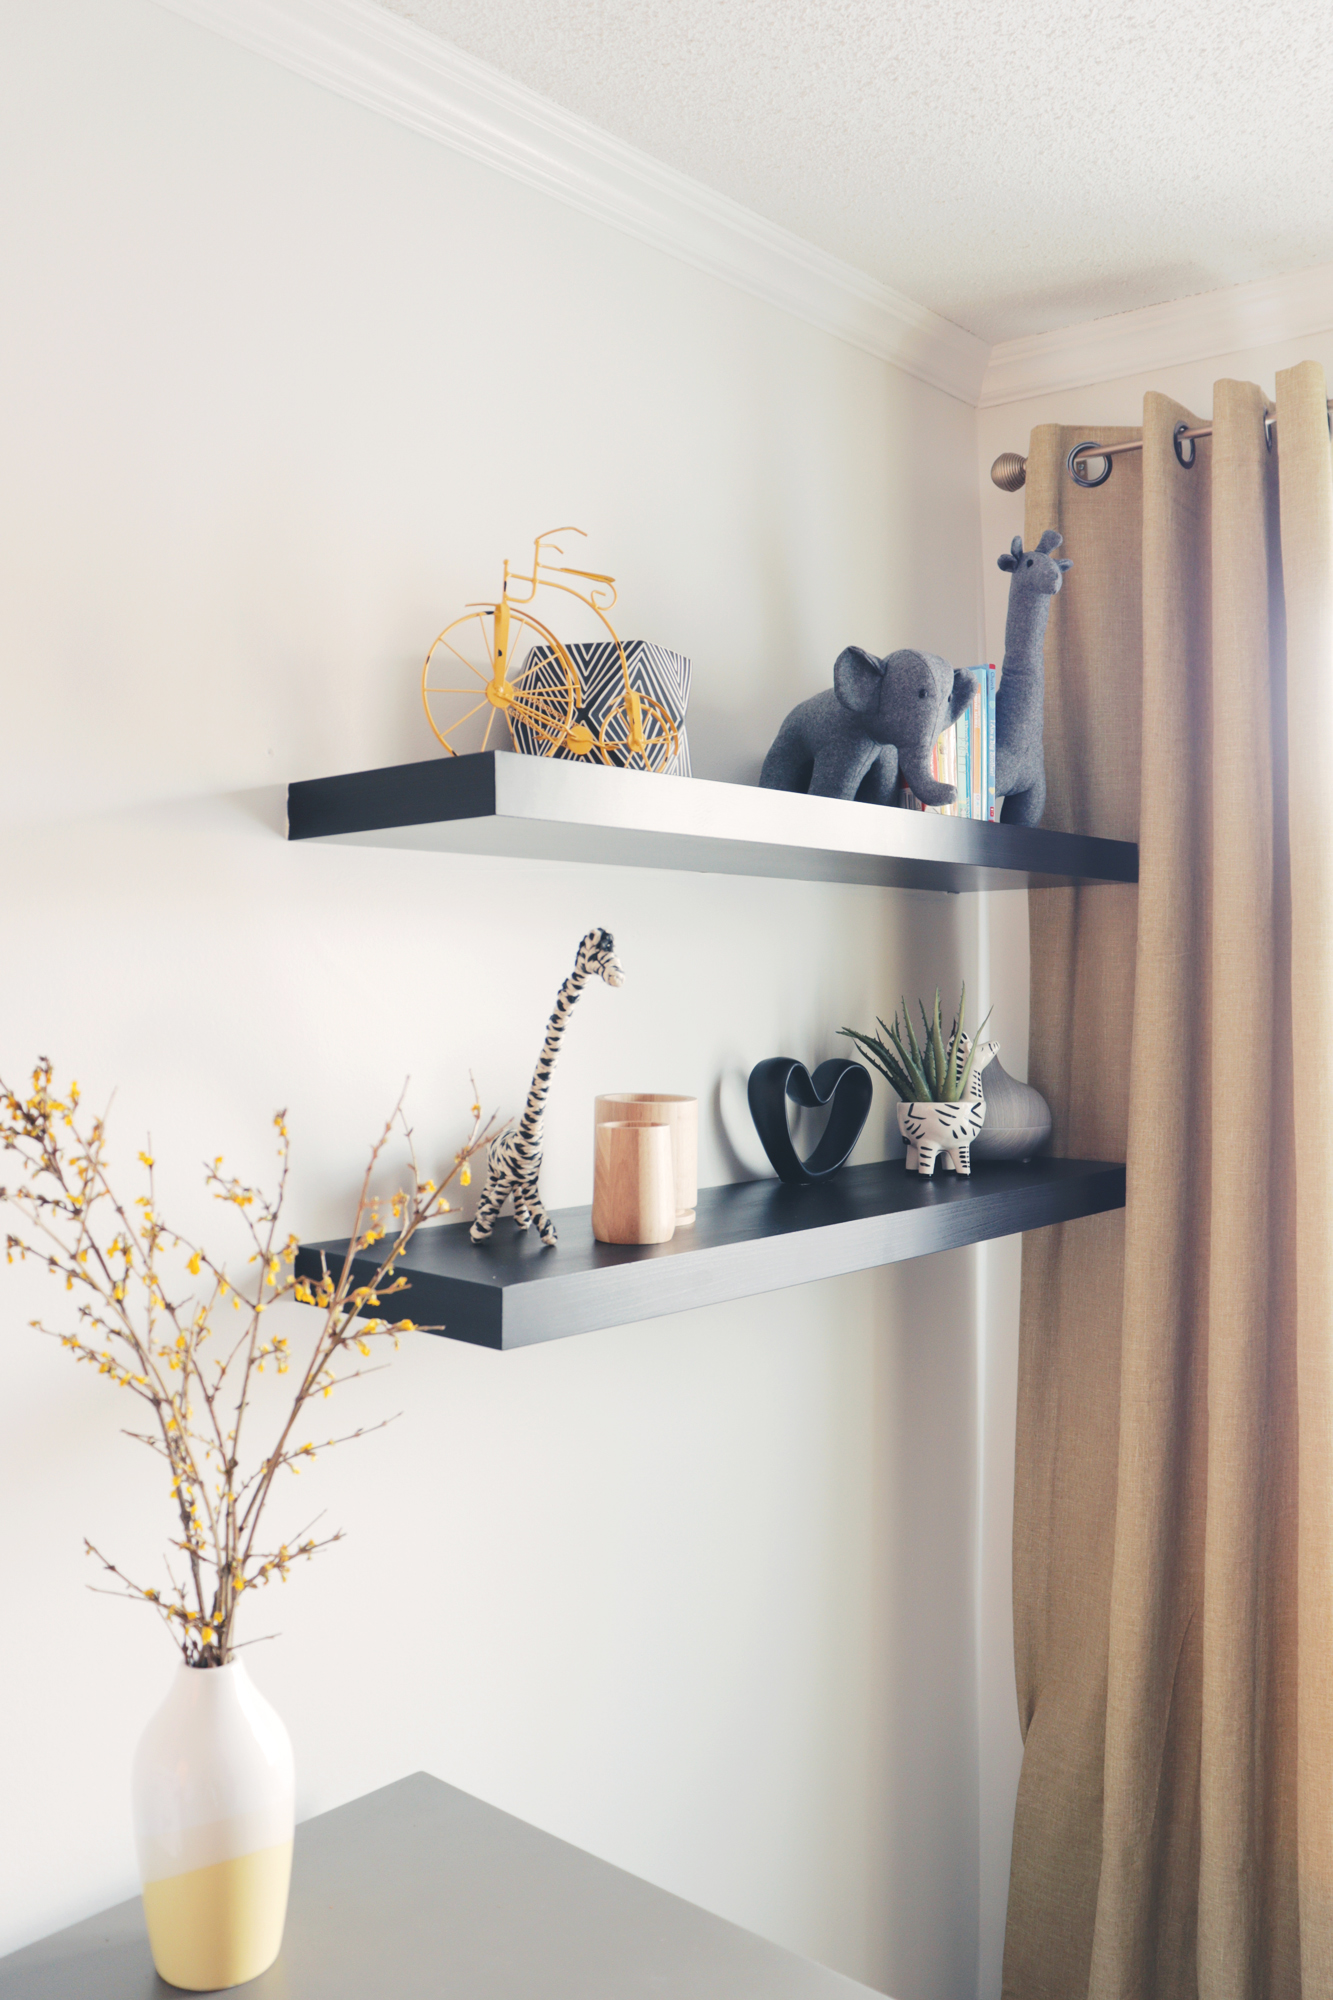 Floating shelves provide a place to store decorative and less used items freeing up the space on the change table